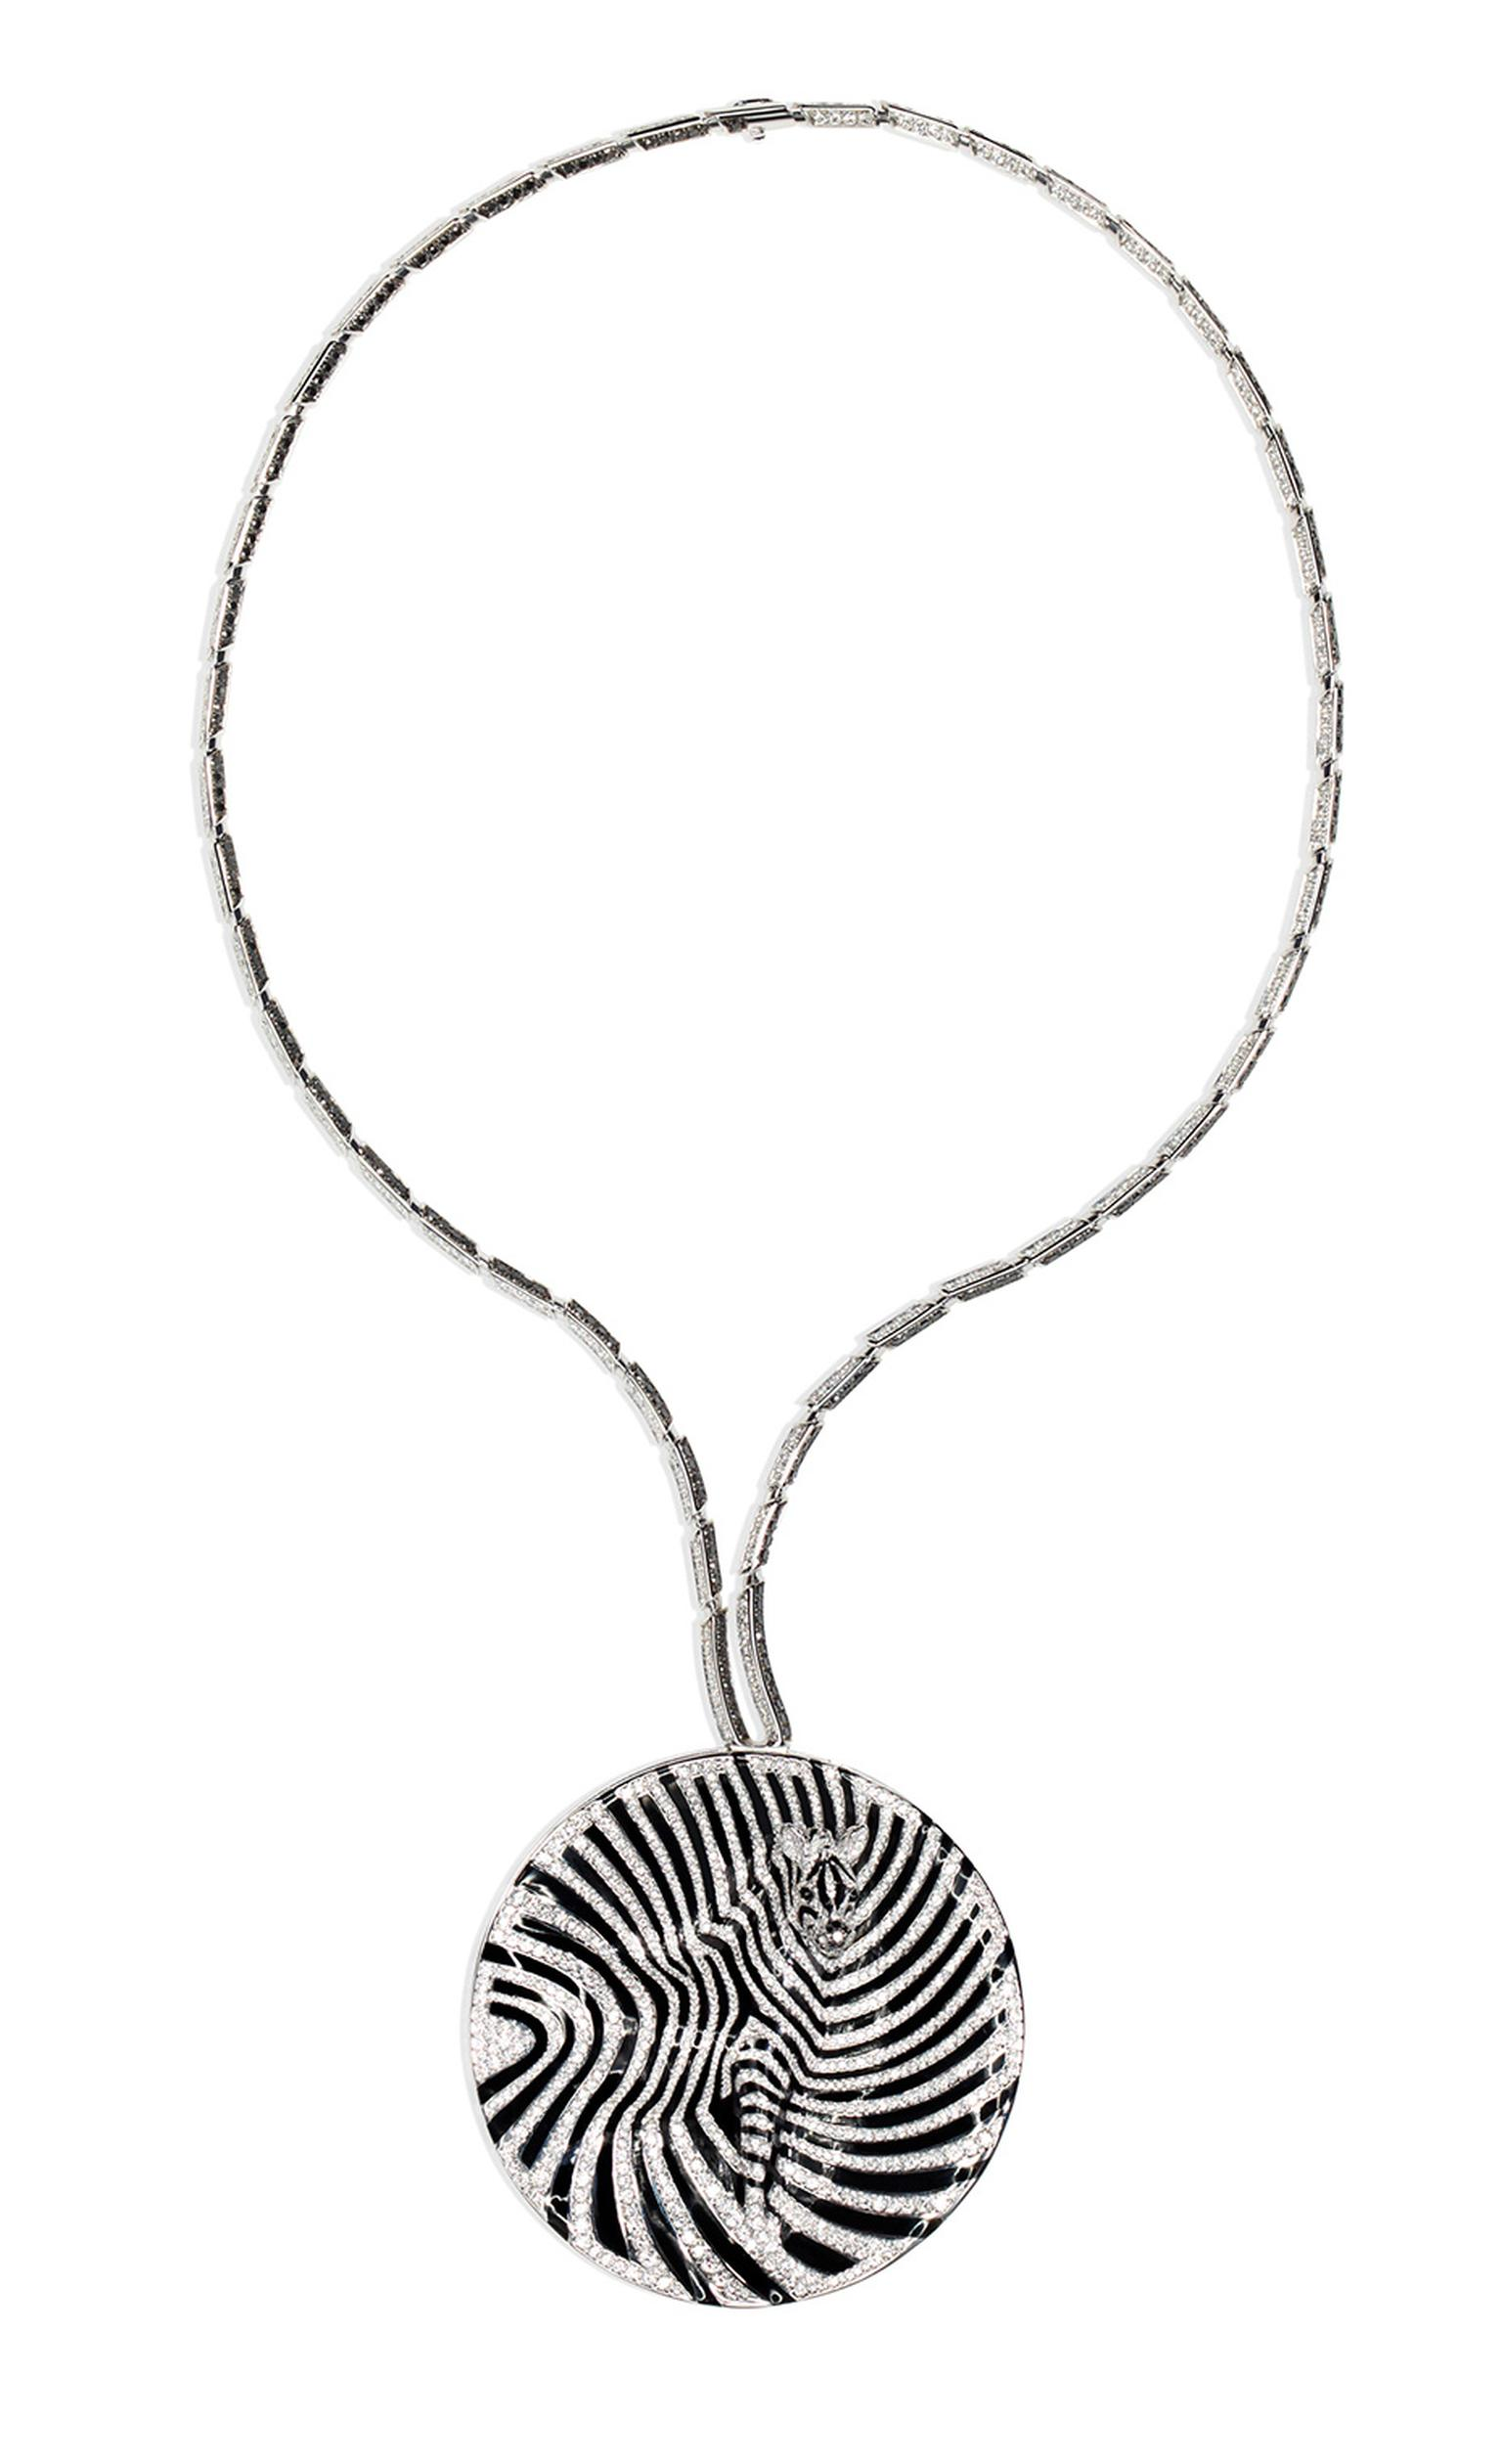 Chopard Animal World Zebra necklace with white and black diamonds